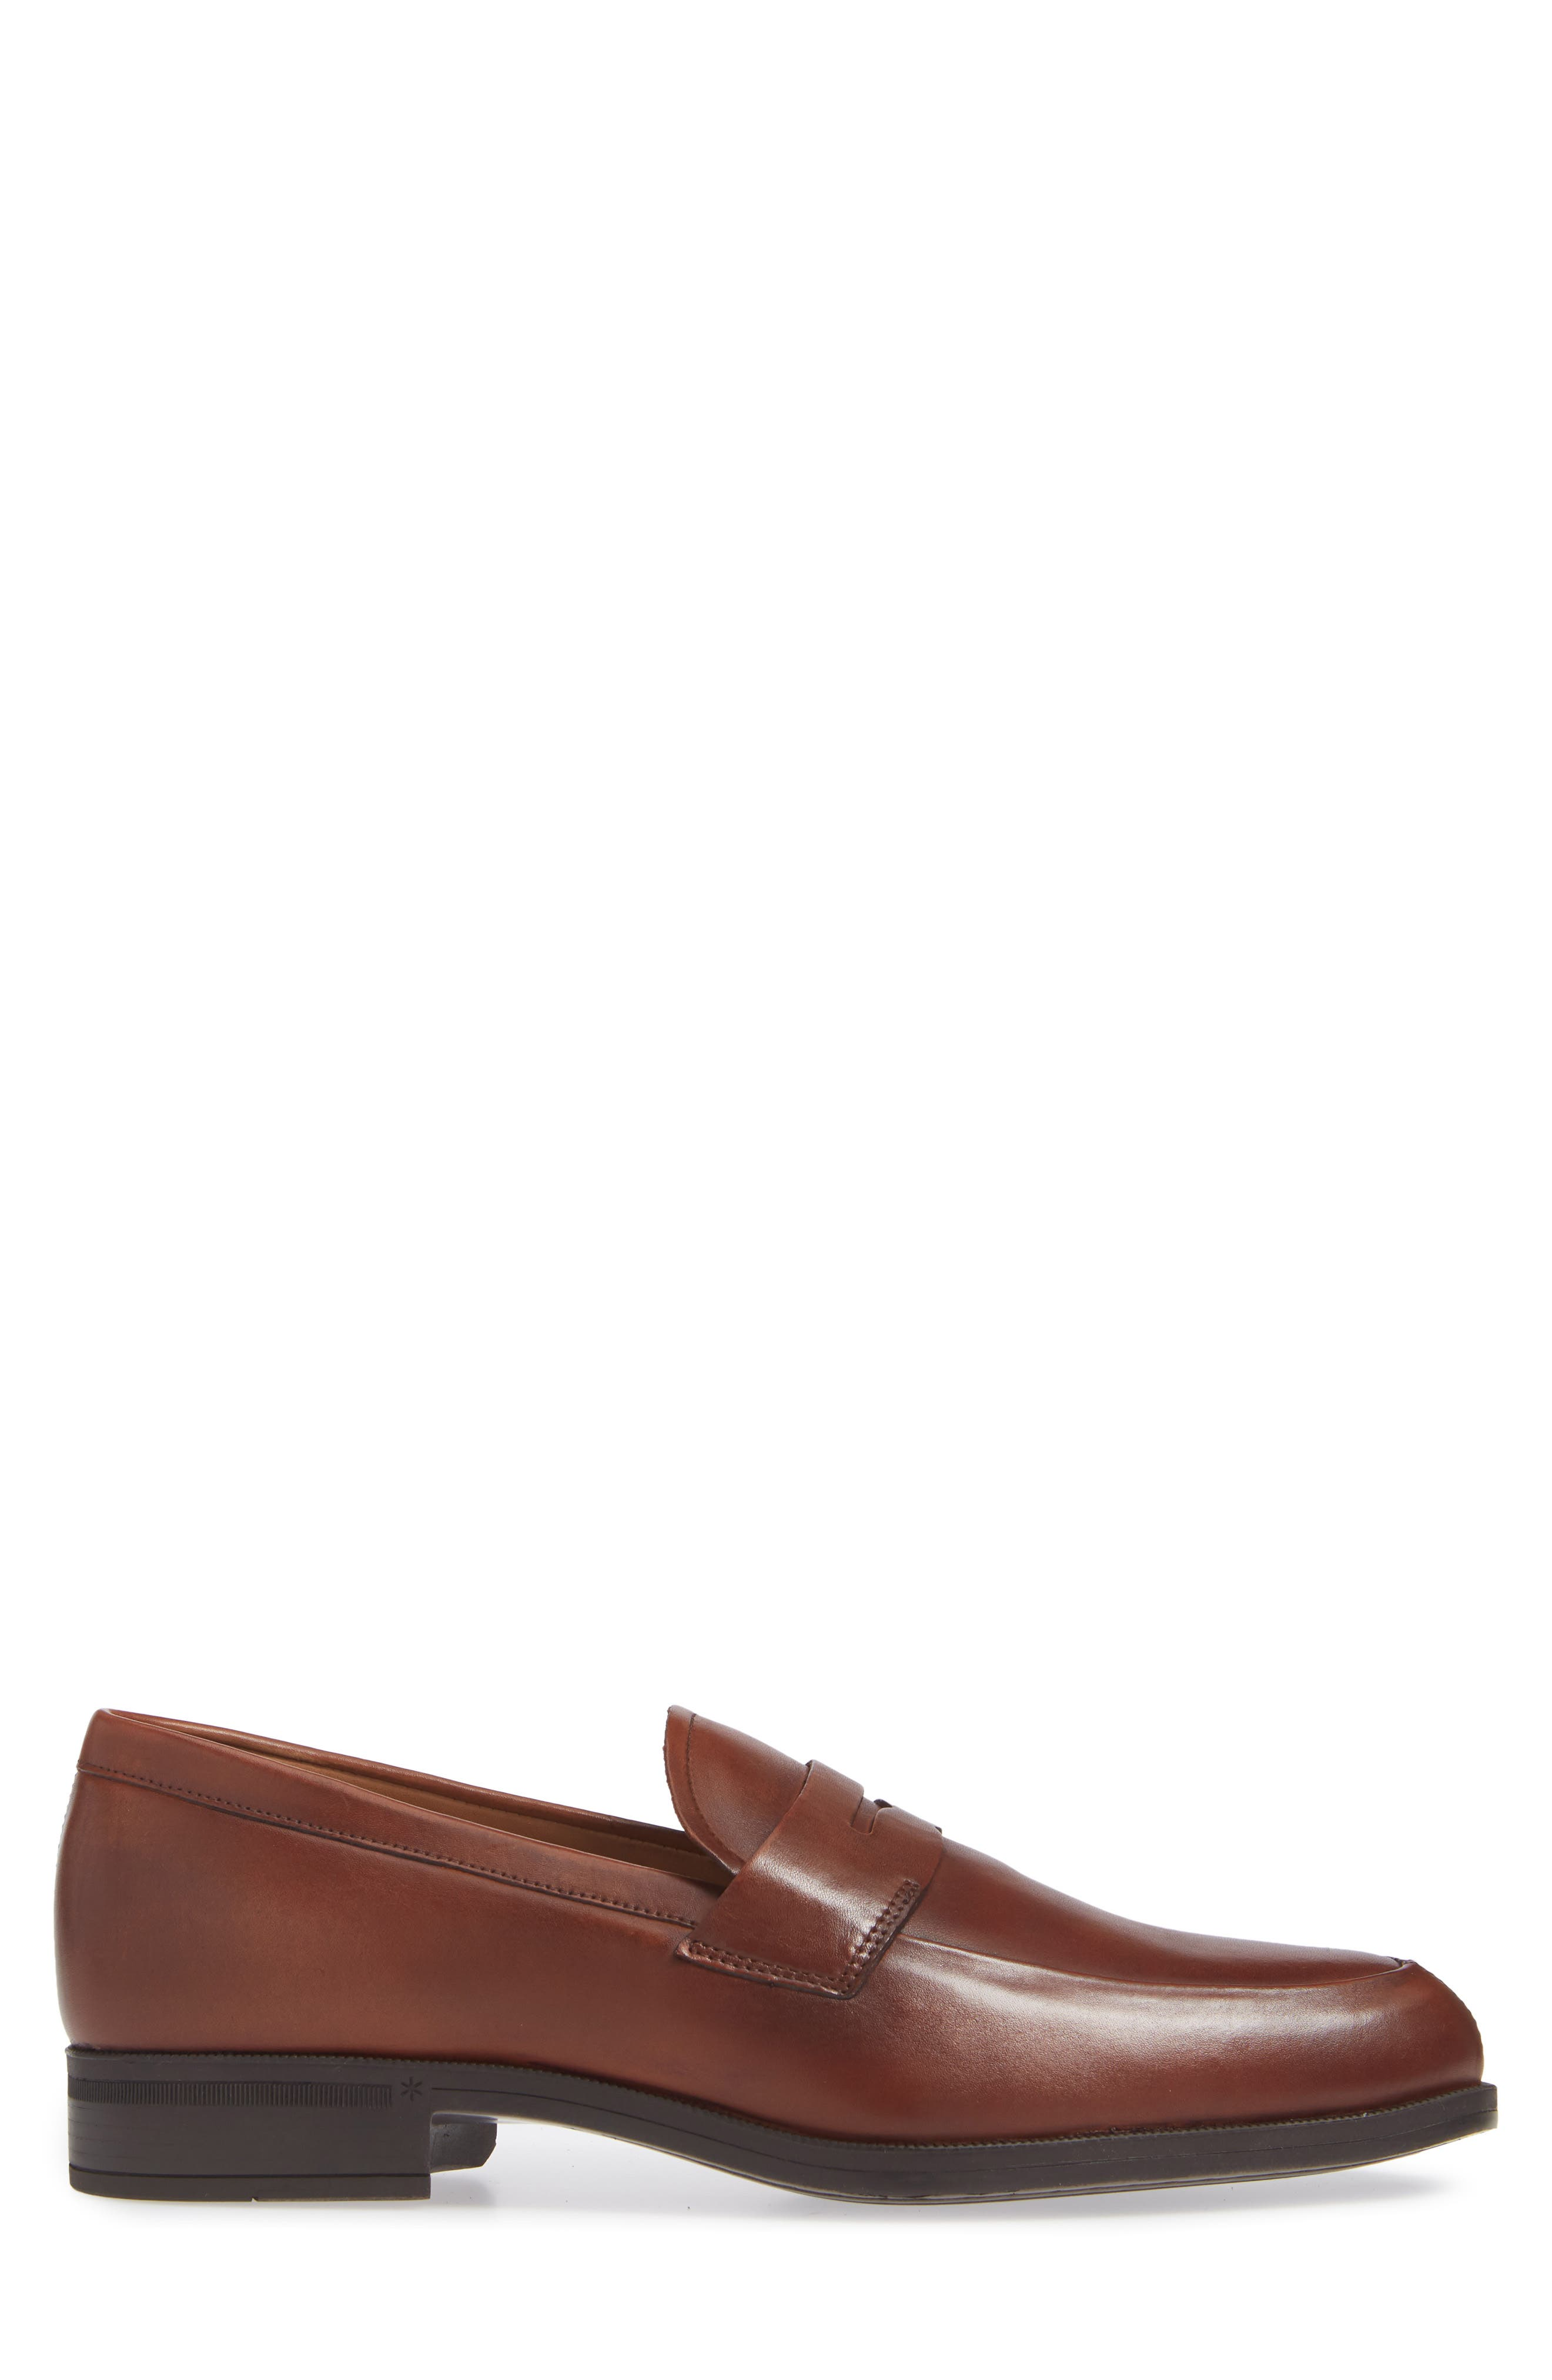 Iggi Penny Loafer,                             Alternate thumbnail 3, color,                             COGNAC LEATHER